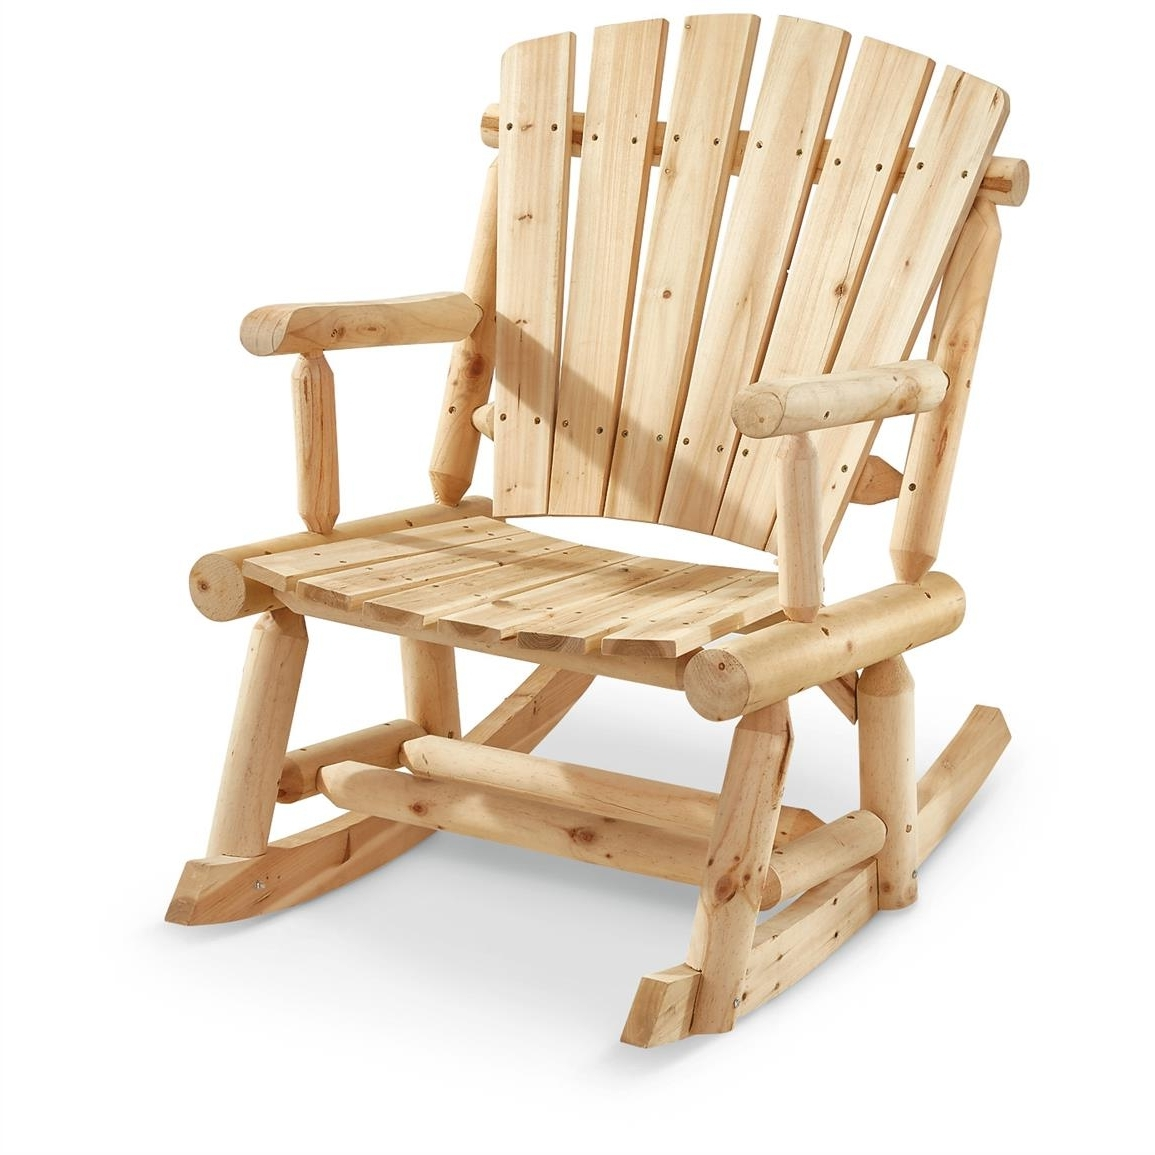 Castlecreek Oversized Adirondack Rocker – 657797, Patio Furniture At Regarding Latest Oversized Patio Rocking Chairs (View 4 of 15)